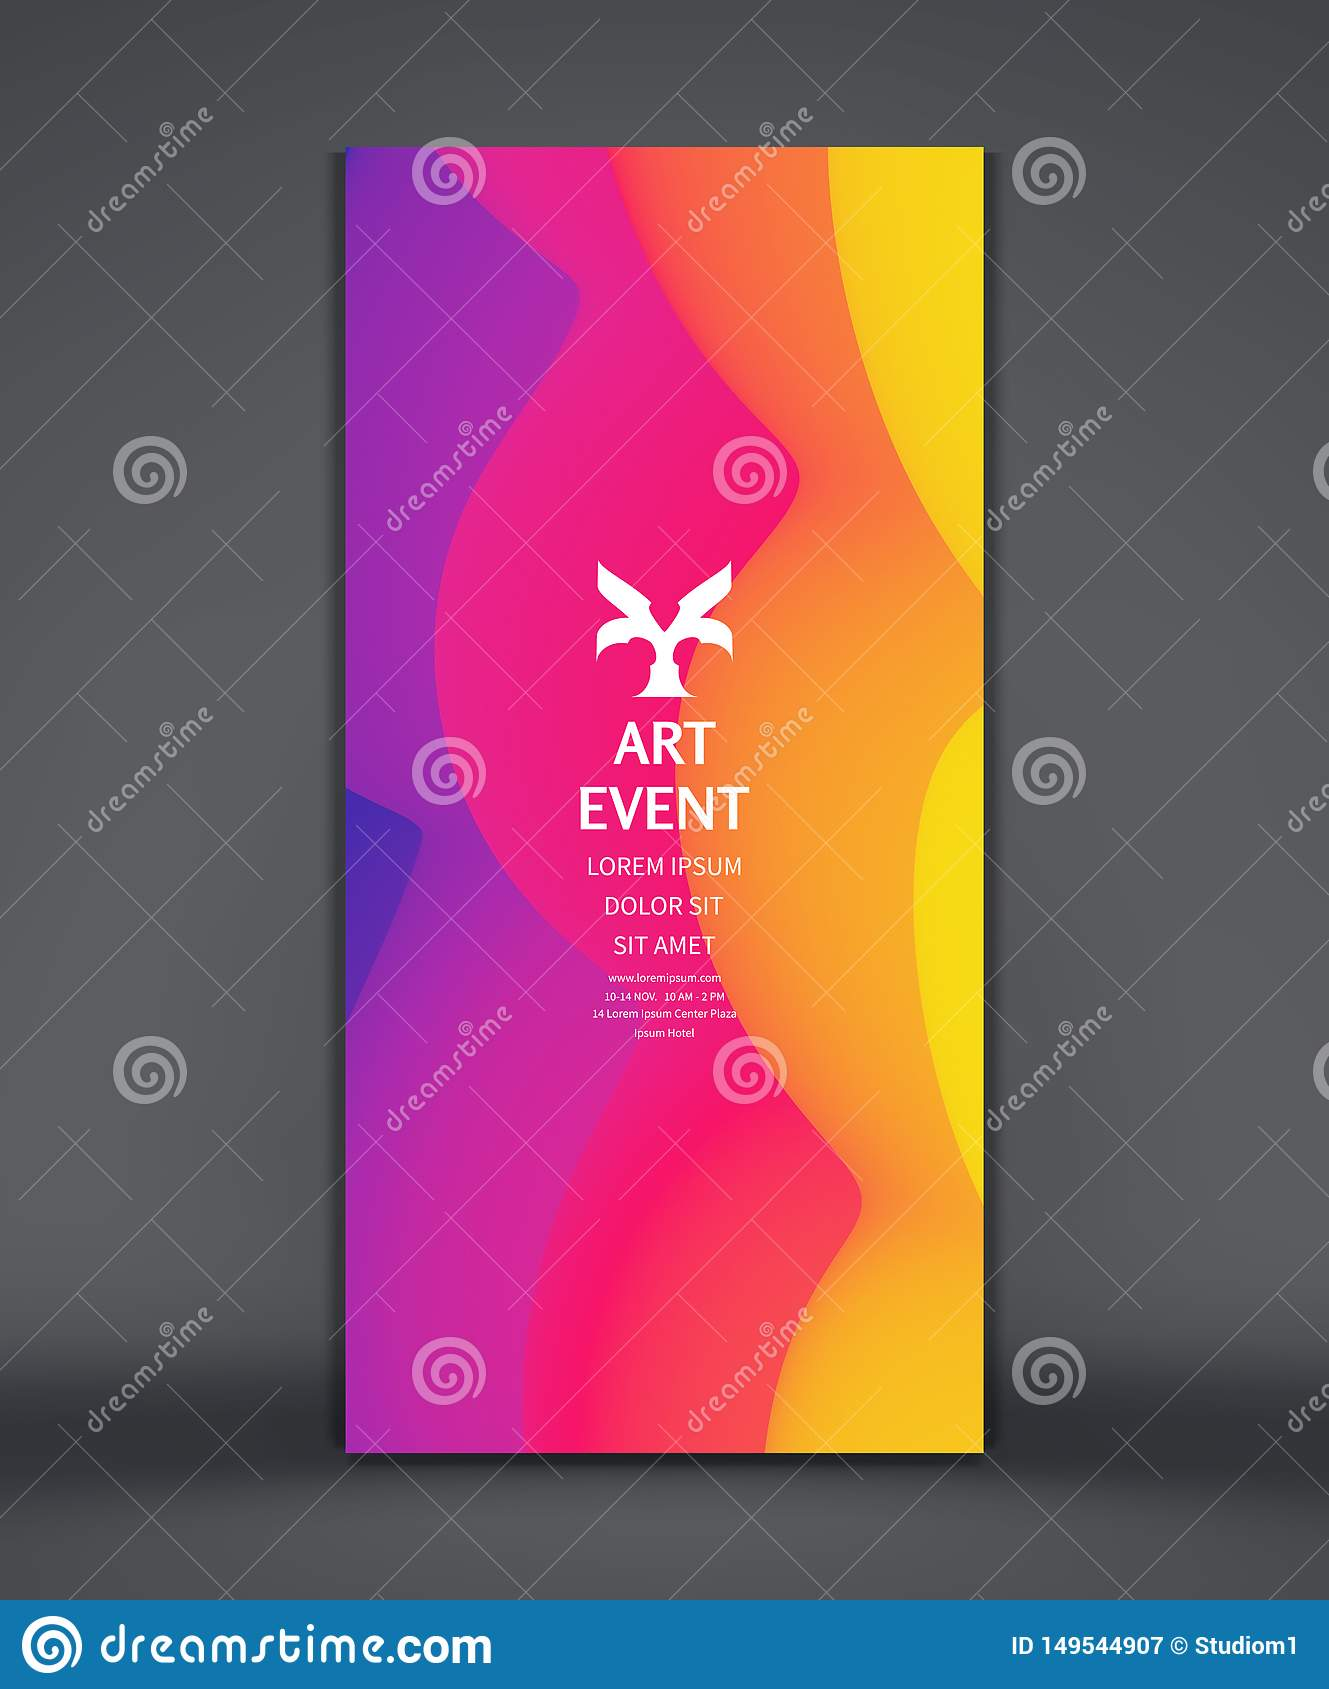 Art Event Invitation Template Abstract Background With